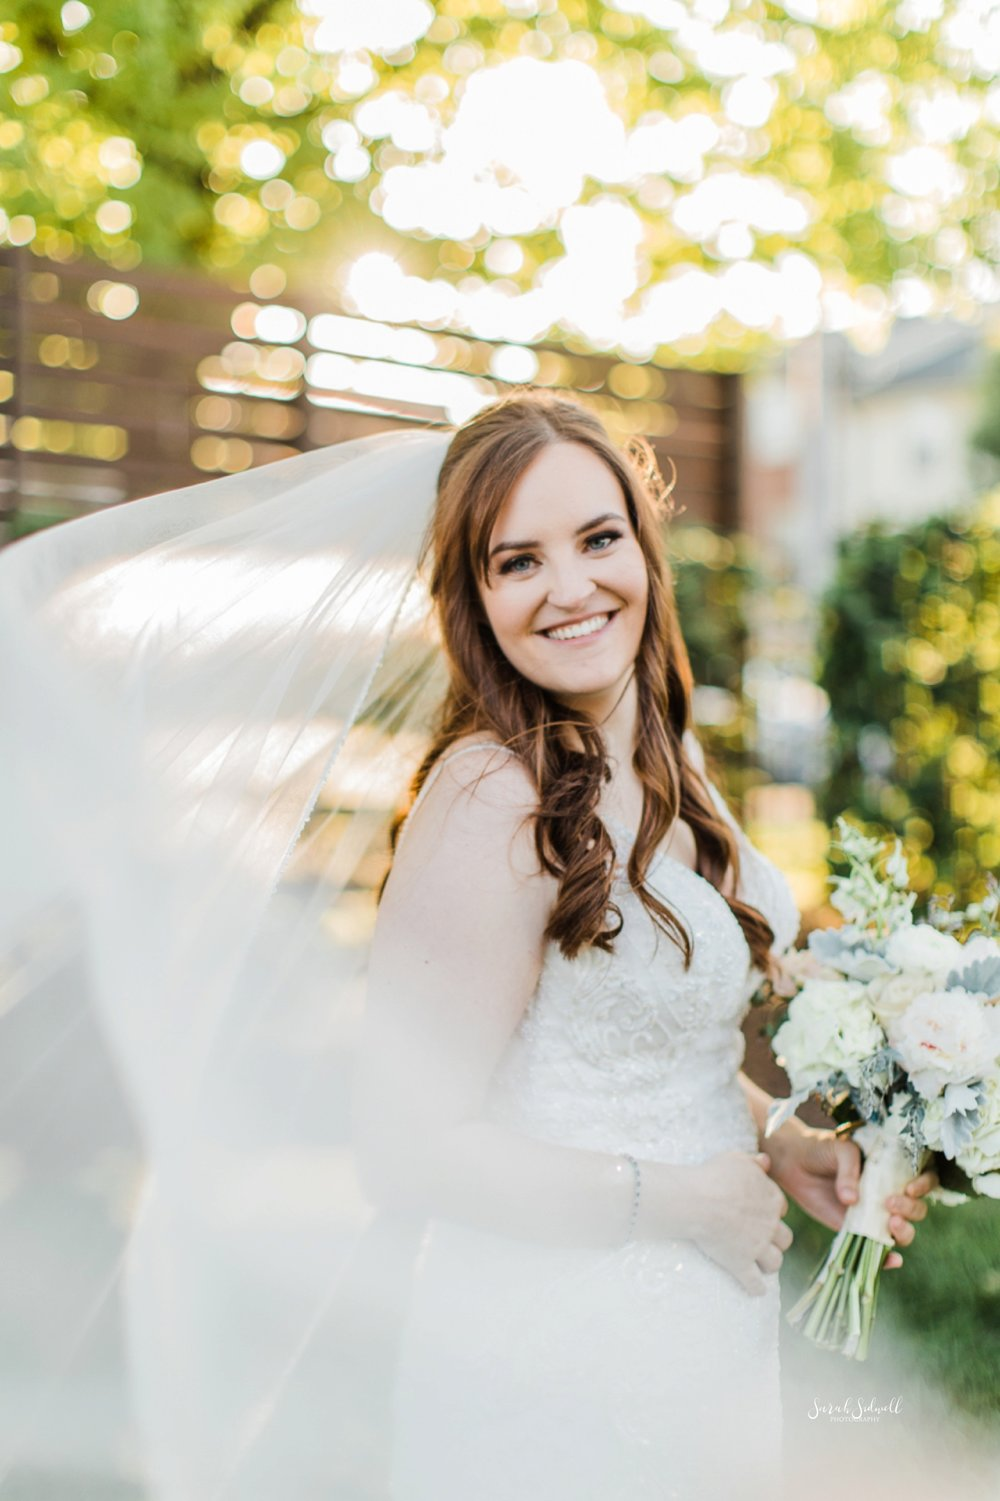 A bride's veil flows around her as she smiles.